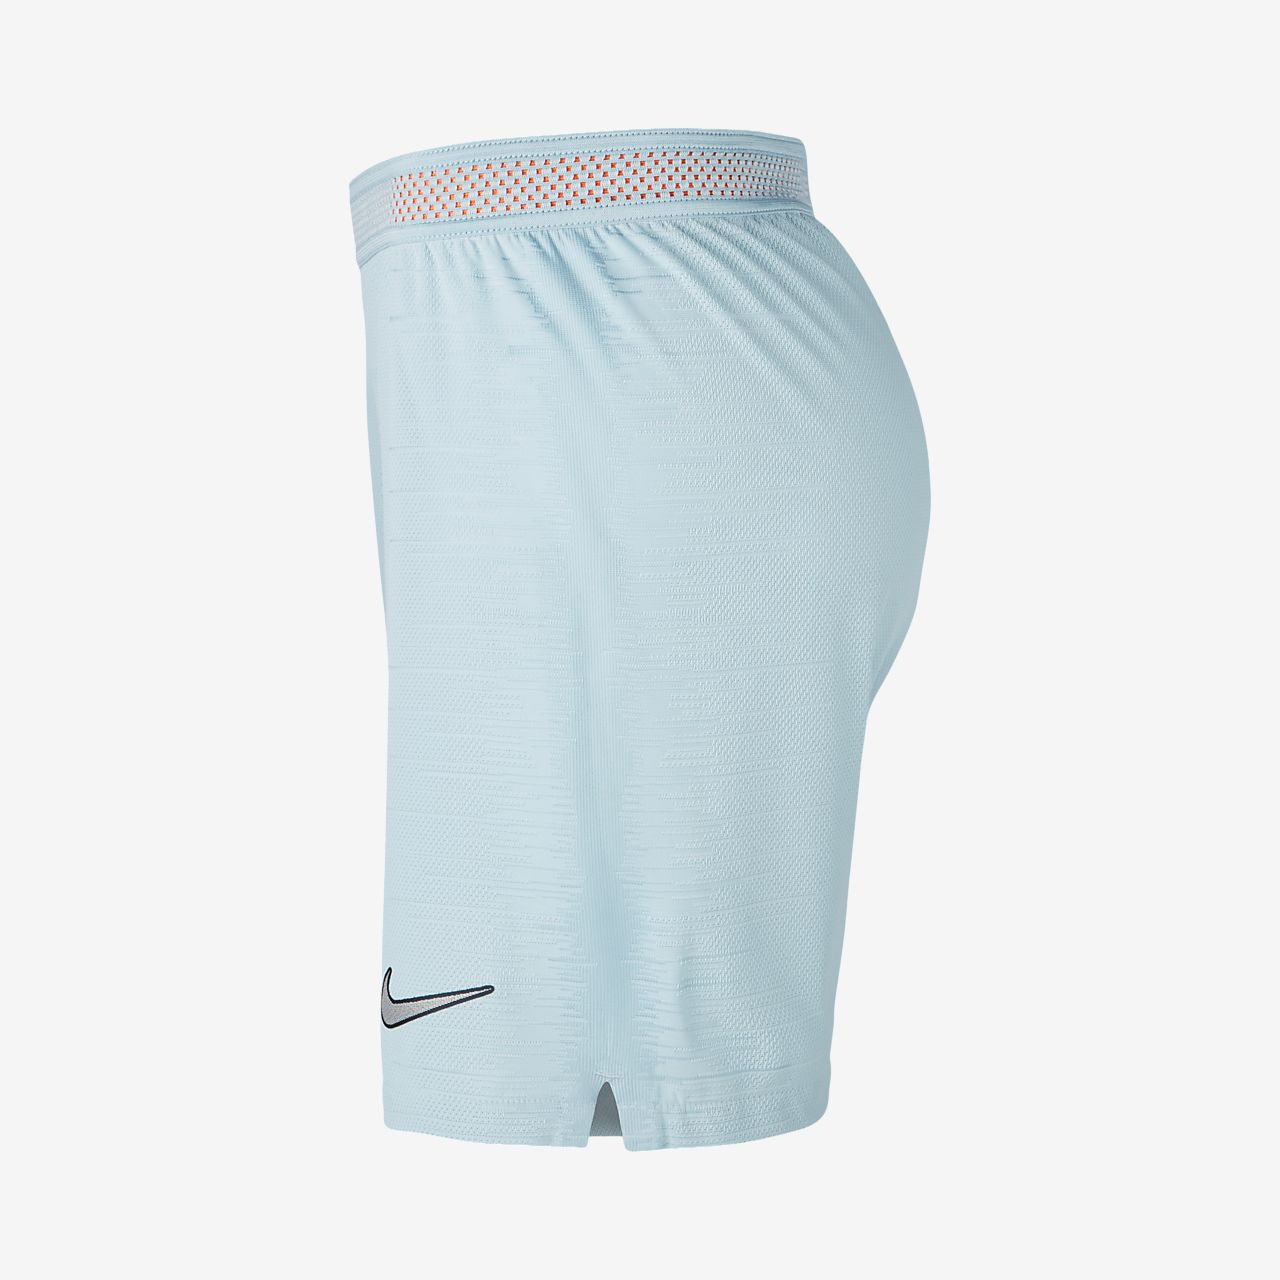 a327c2f07200 2018 19 Chelsea FC Vapor Match Third Men s Football Shorts. Nike.com CA